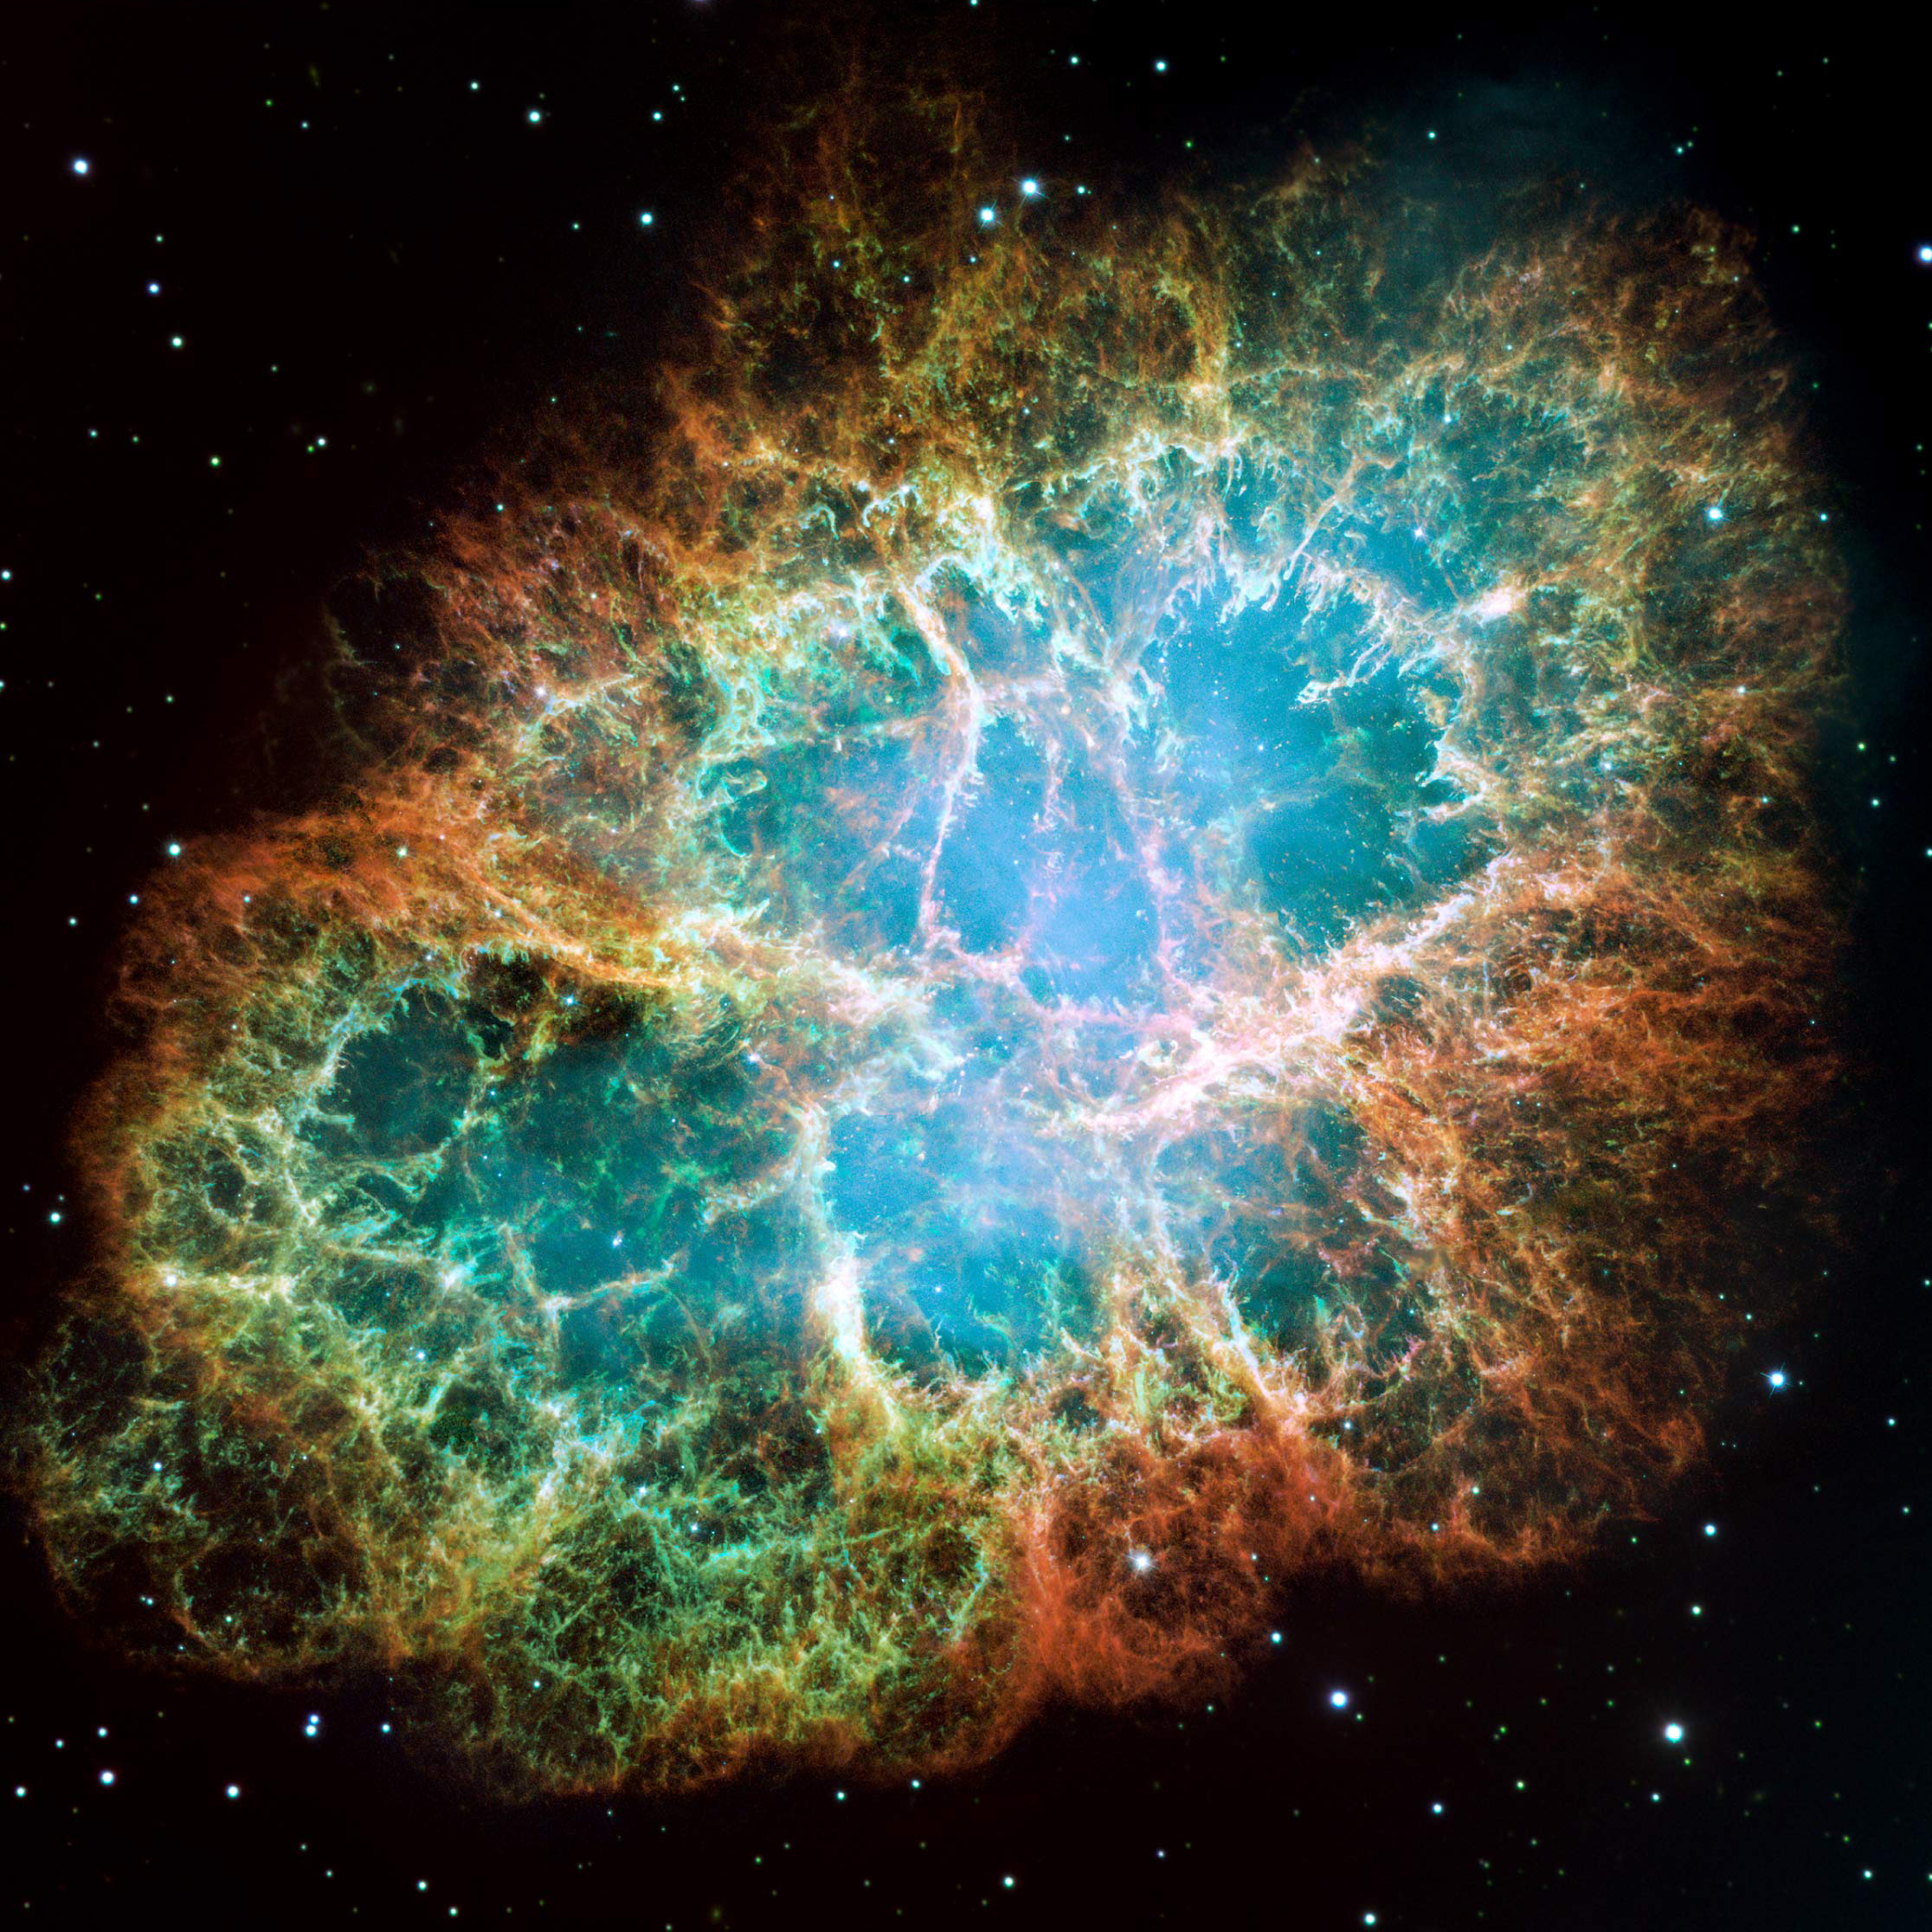 Messier 1, more commonly known as the Crab Nebula. The star that exploded was originally spotted in 1054 by Chinese astronomers but the nebula that rose from the supernova explosion itself was officially discovered in 1731. Credit: NASA, ESA, J. Hester and A. Loll (Arizona State University)